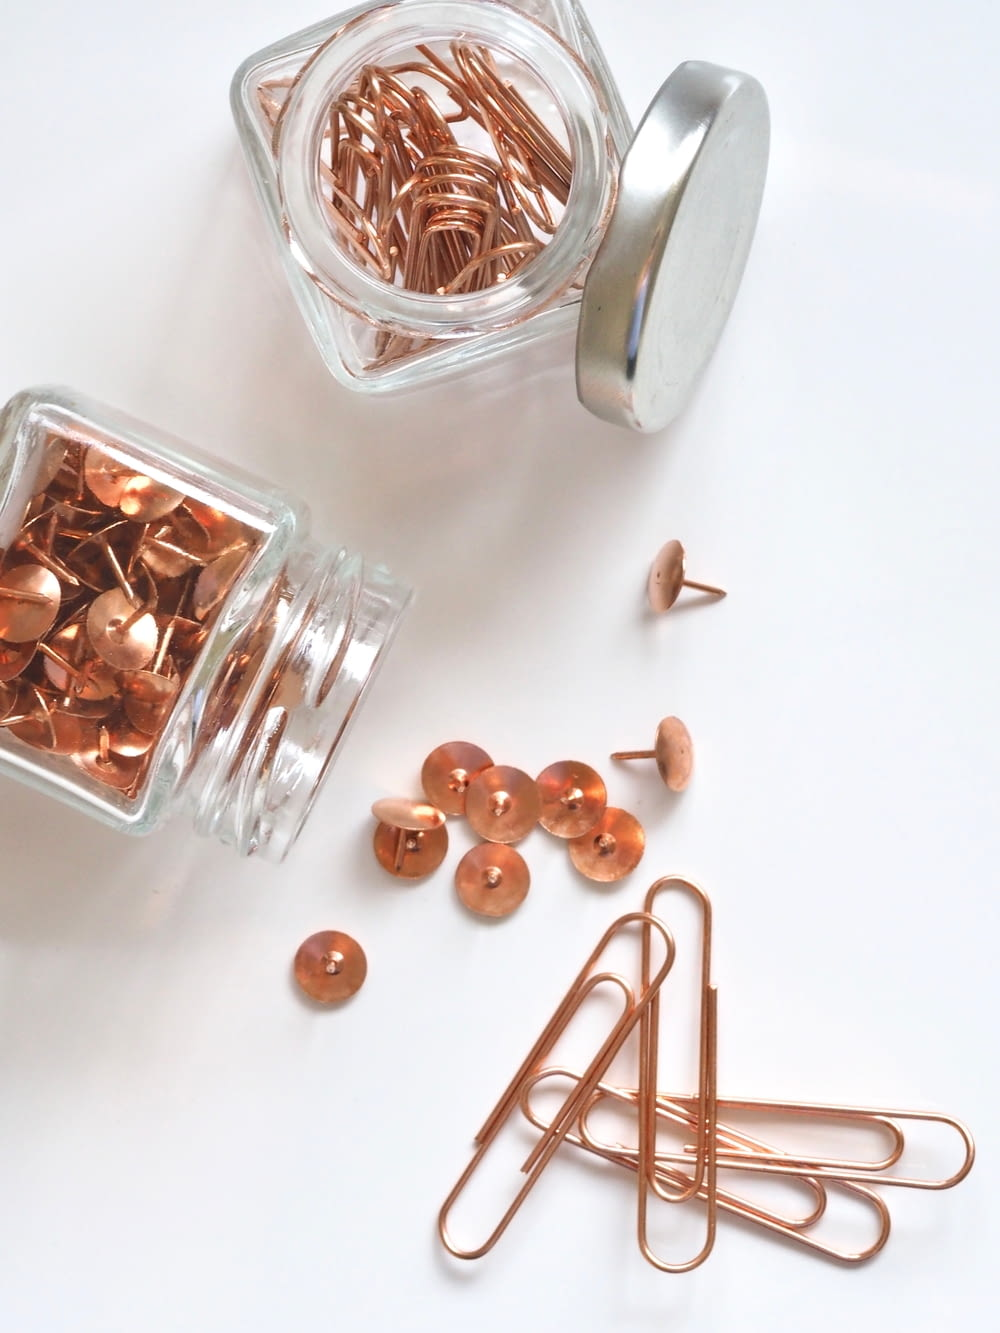 brass thumbtacks and paper clips